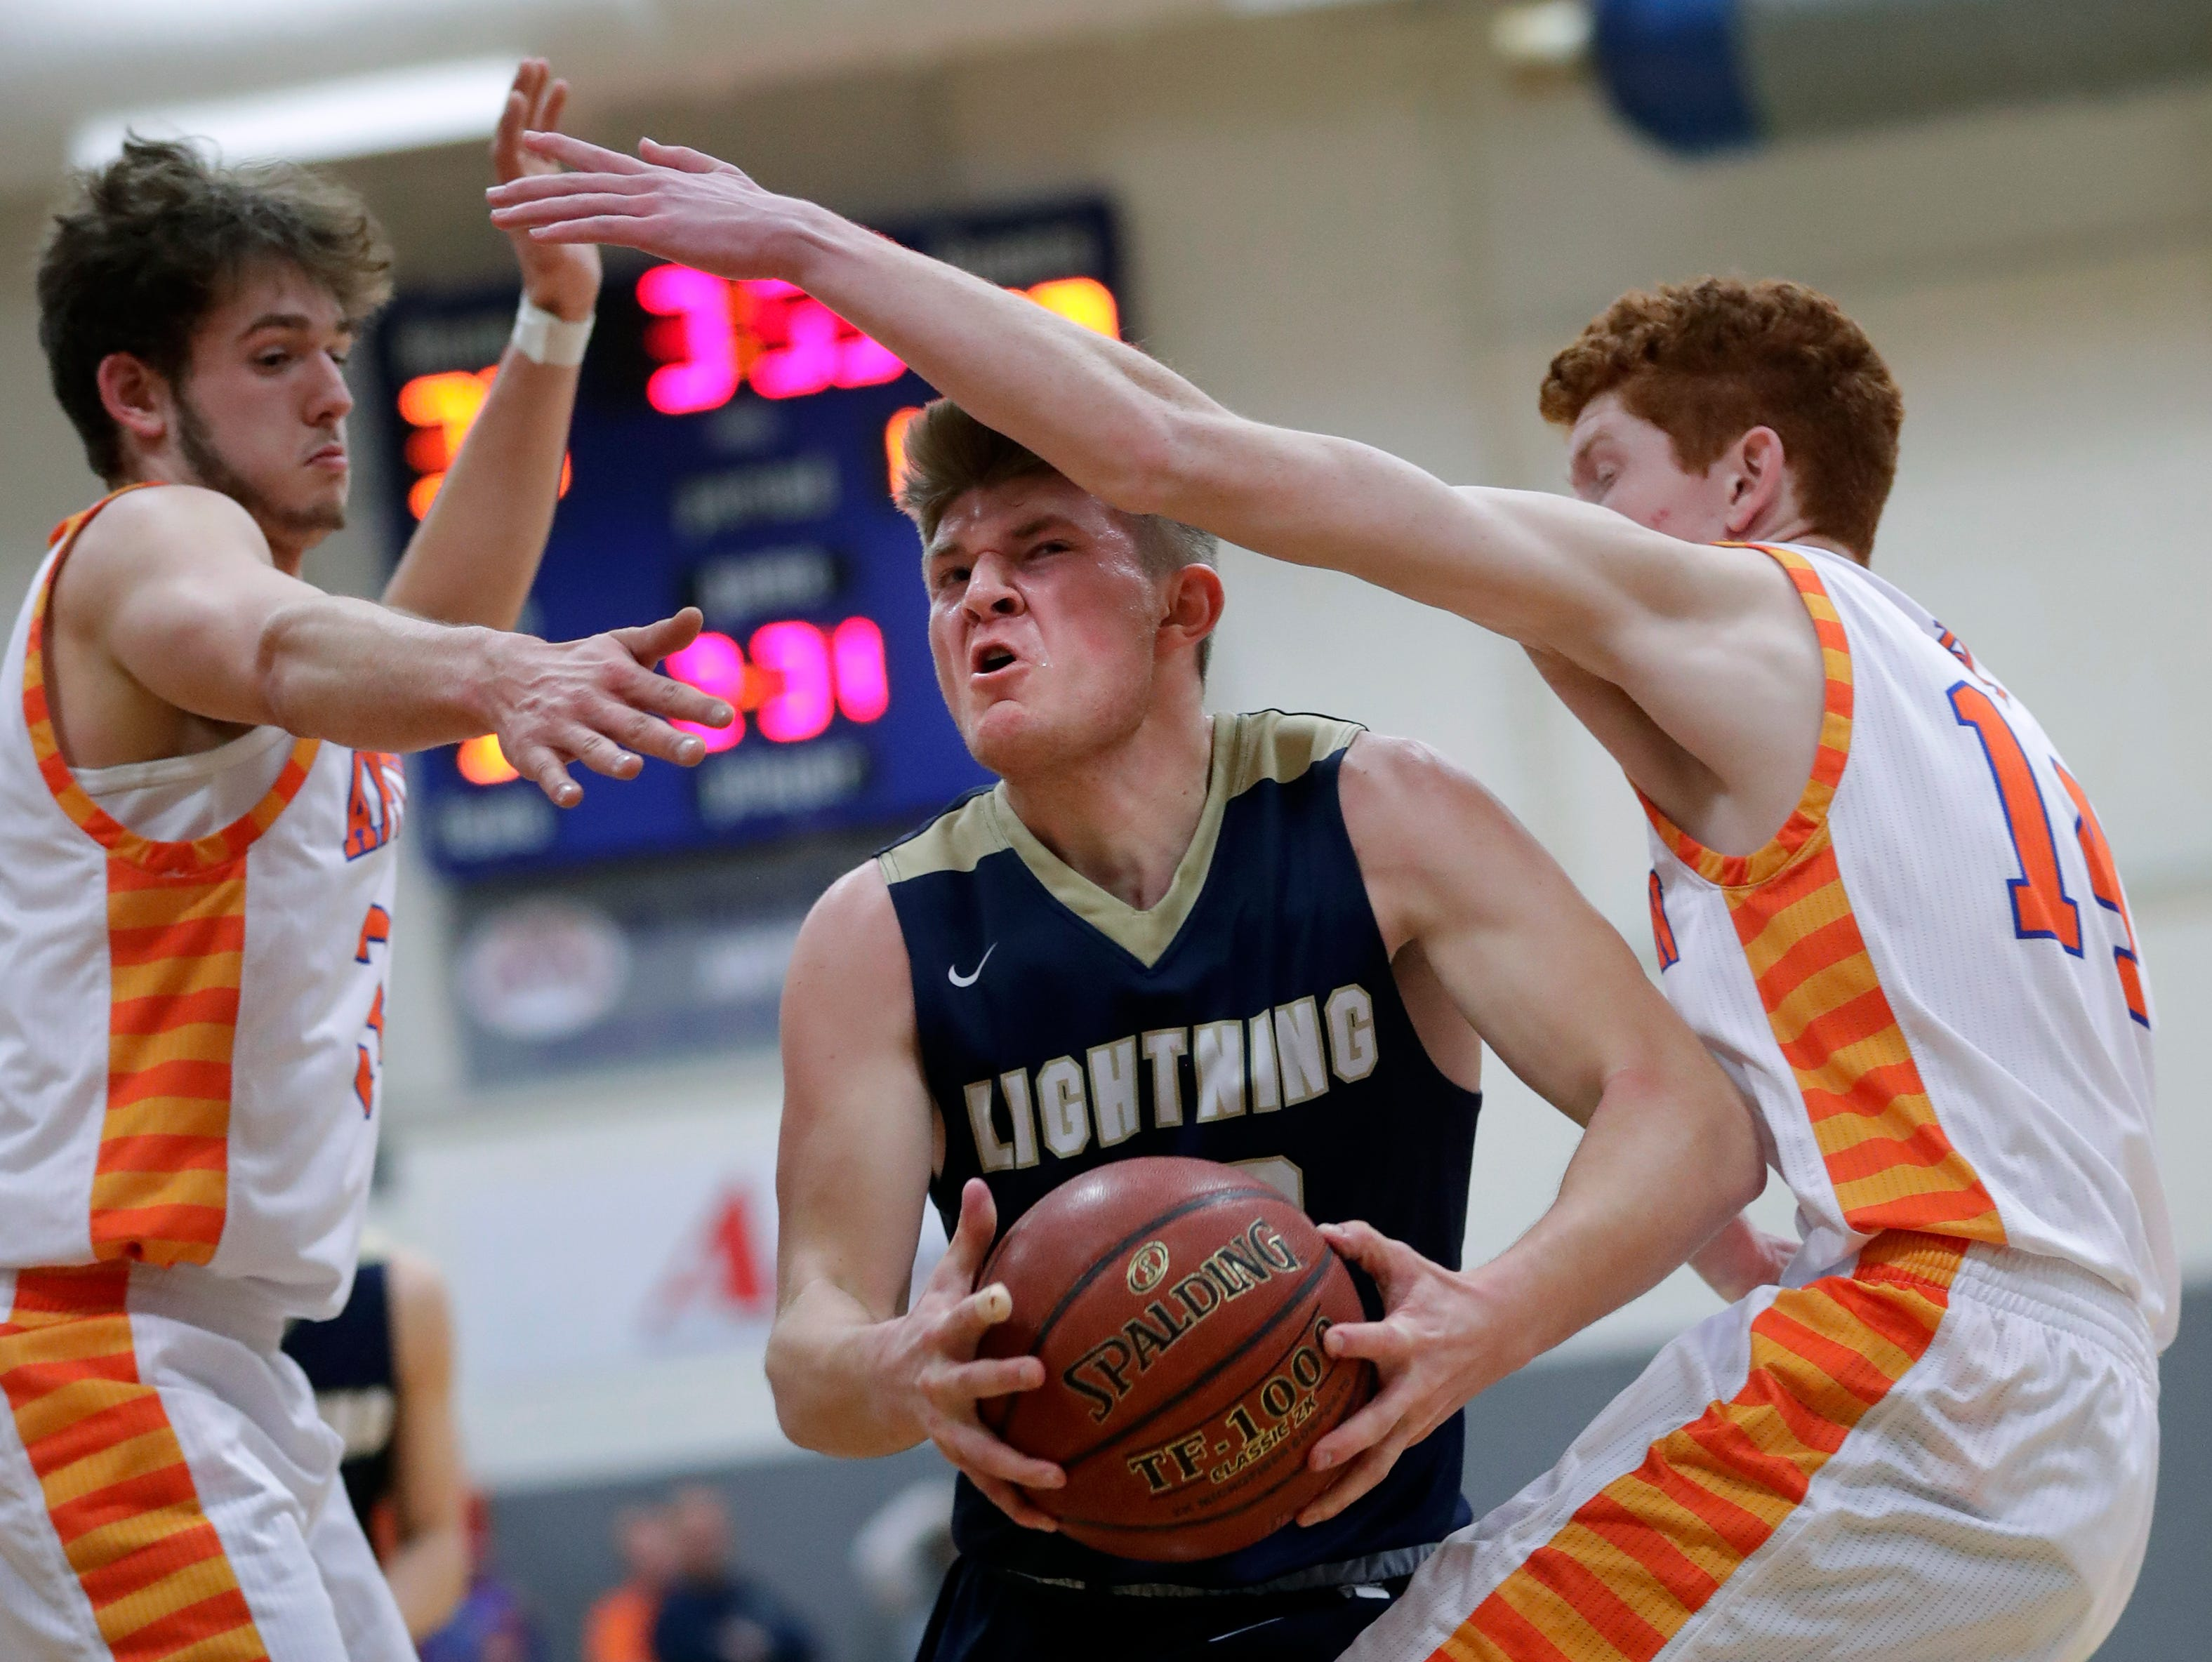 Appleton West High School's Spencer Mellberg, left, and Colin Murray, right, defend against Appleton North High School's Devin Blom as he drives to the basket during their boys basketball game Friday, January 25, 2019, at Appleton West High School in Appleton, Wis. 